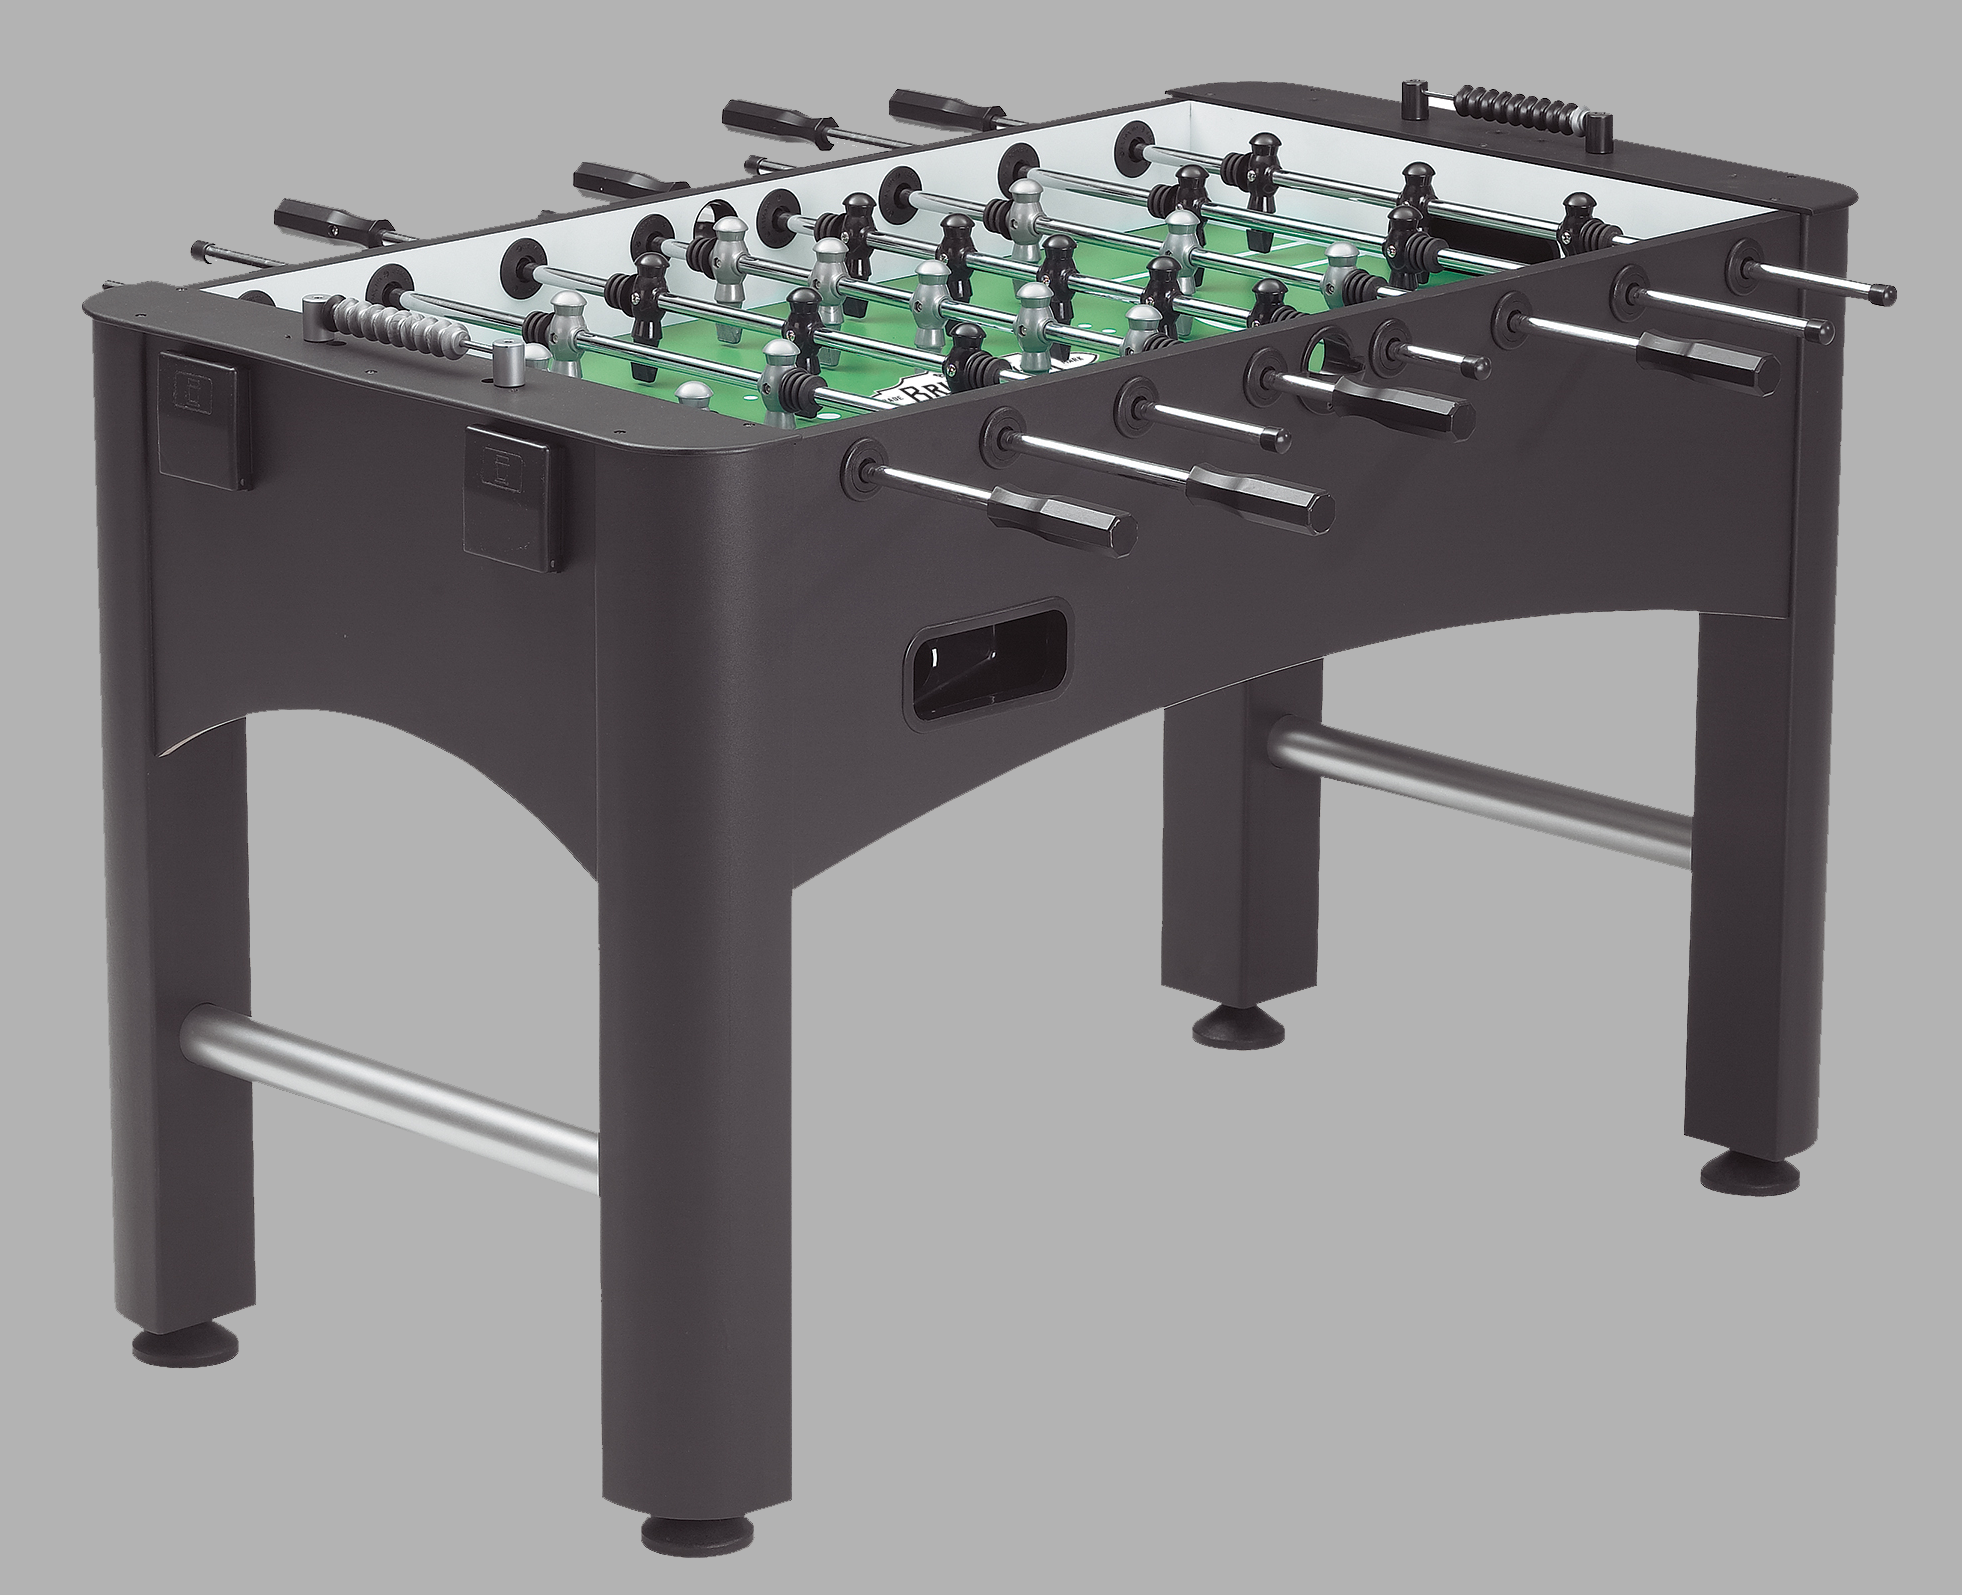 The Kicker Is An Exclusive Sturdy Cabinet With A Matte Black Finish Foosball  Table That Has A Three Man Goalie That Offers A Wall Of Defense And  Incredibly ...